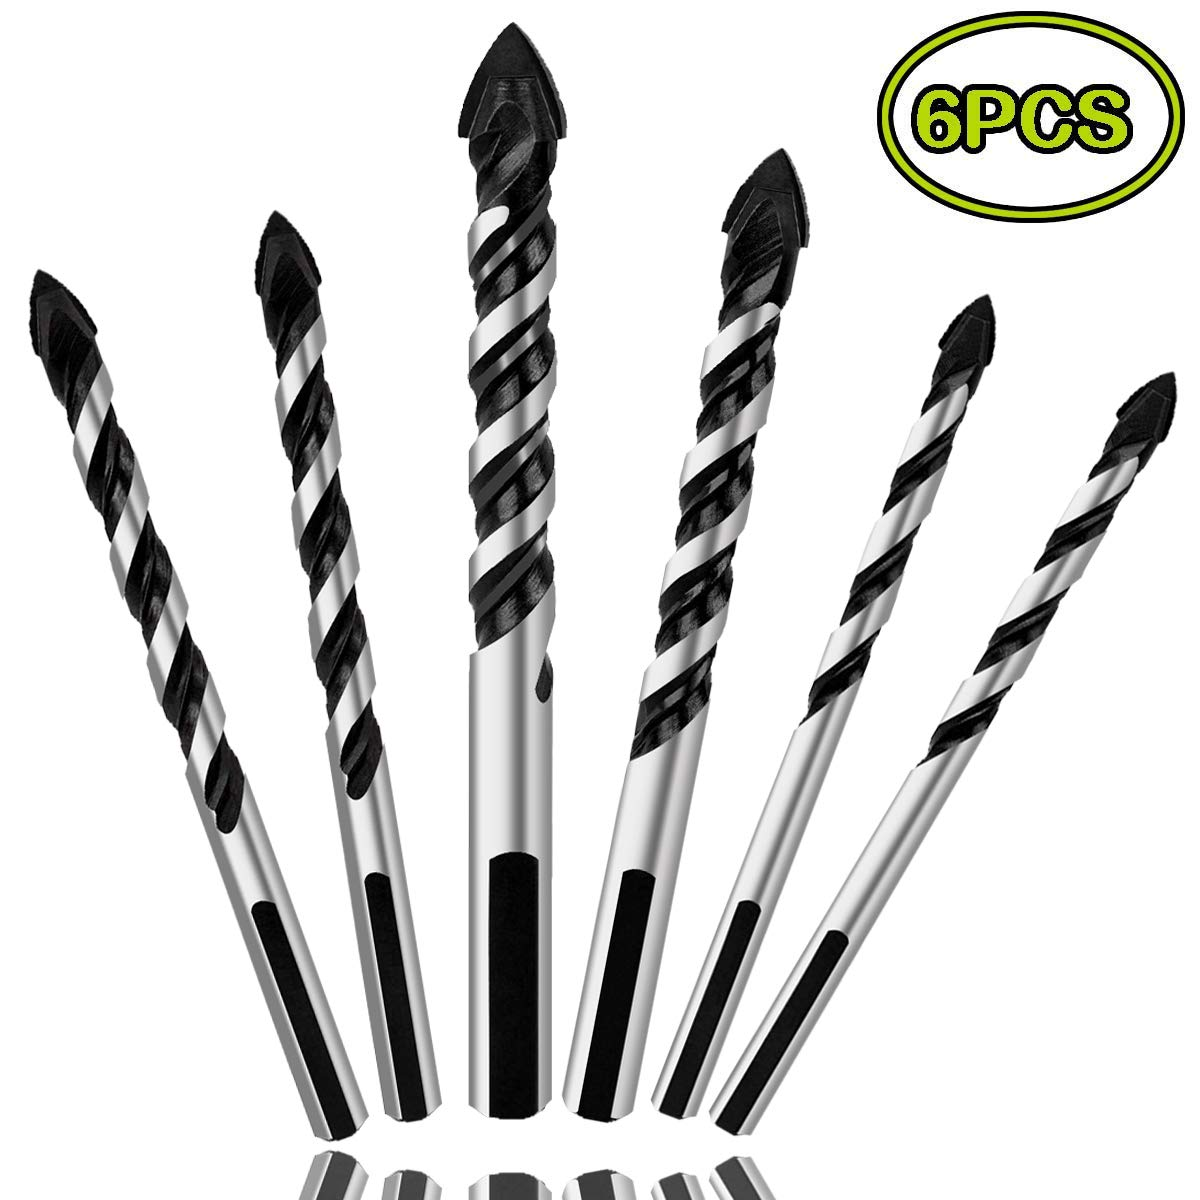 6PCS Ceramic Tile Drill Bits, Mgtgbao Masonry Drill Bits Set for Glass, Brick, Tile, Concrete, Plastic and Wood Tungsten Carbide Tip for Wall Mirror and Ceramic Tile with size 6, 6, 8, 8,10,12mm. 61YRNbljHDL